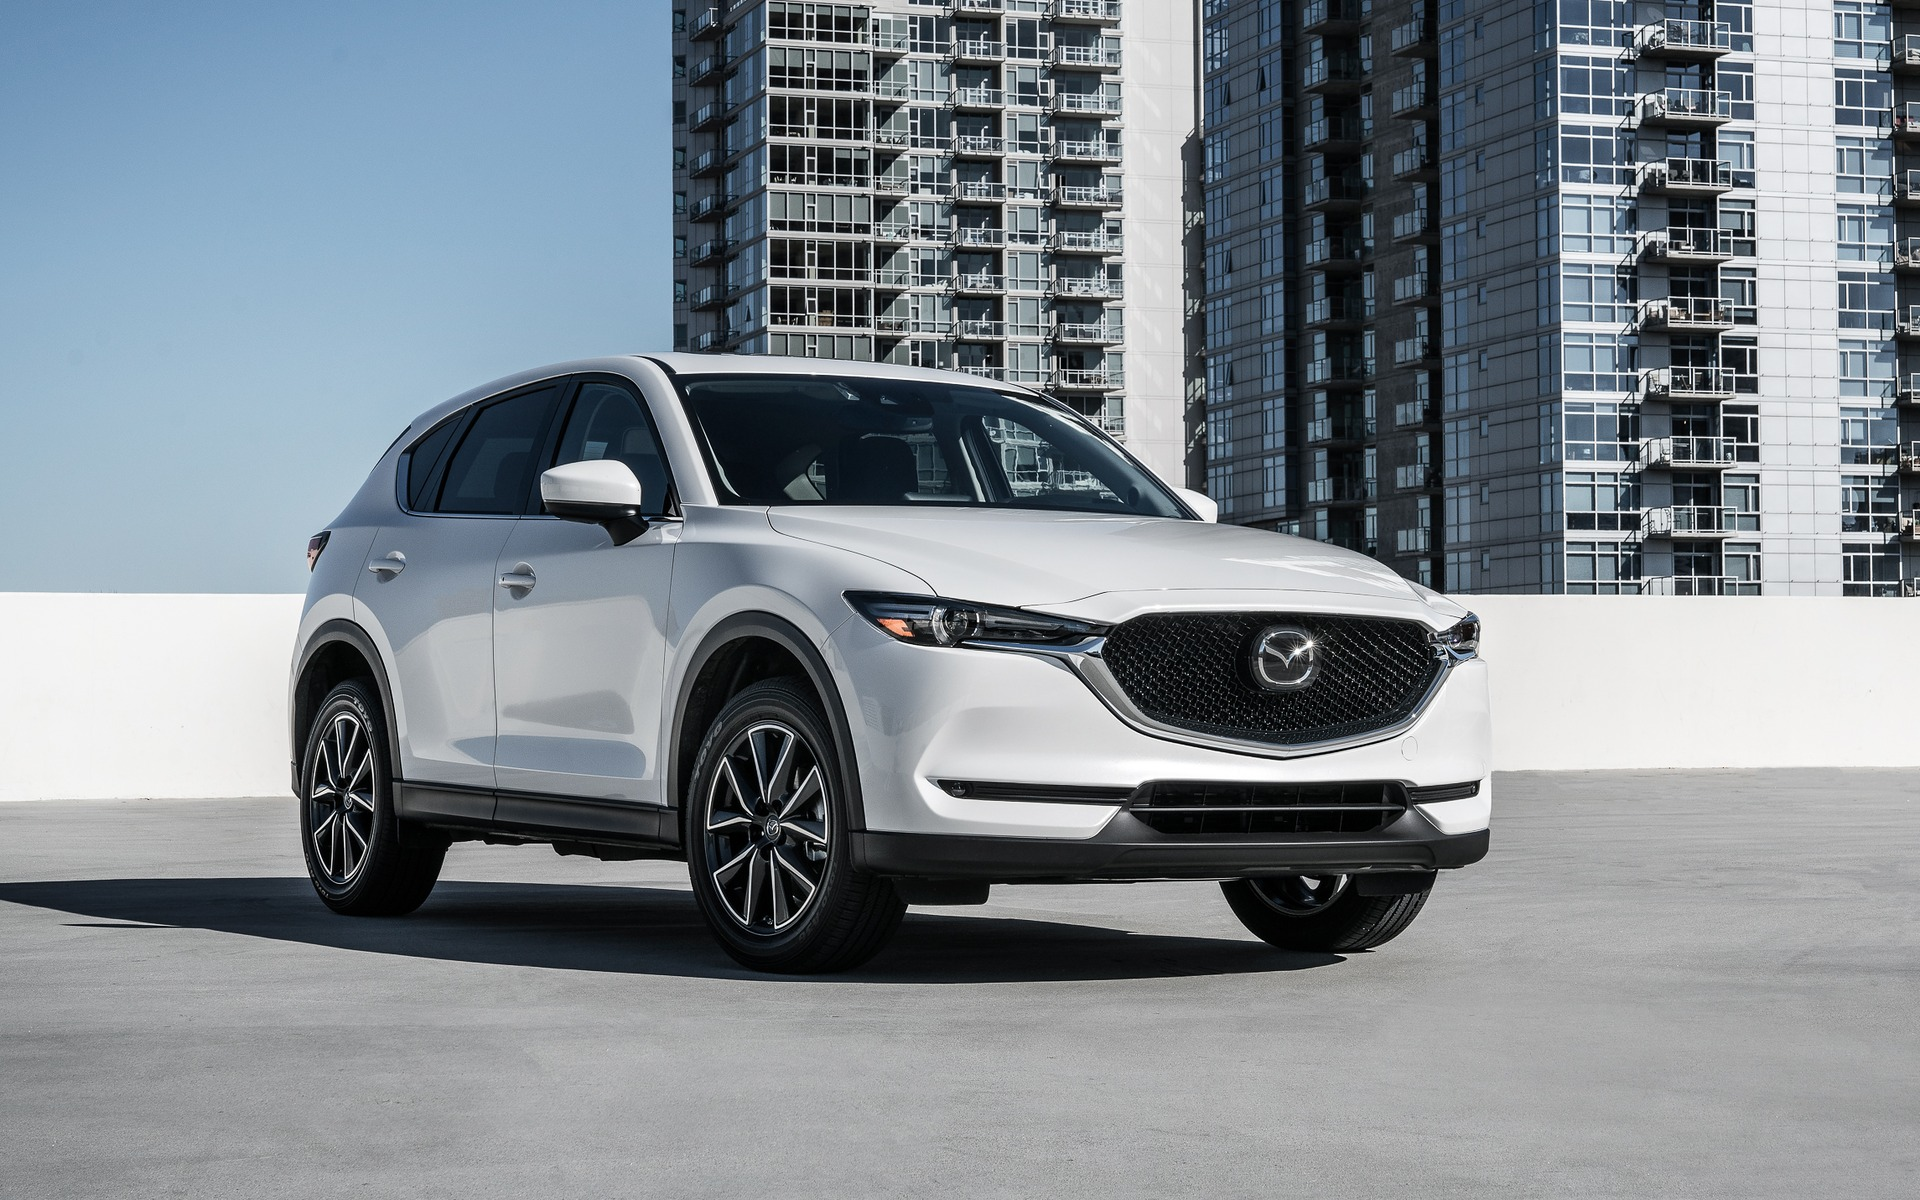 Mazda CX-5 private lease CX-5 2.0 skyactiv-G 121kW Comfort